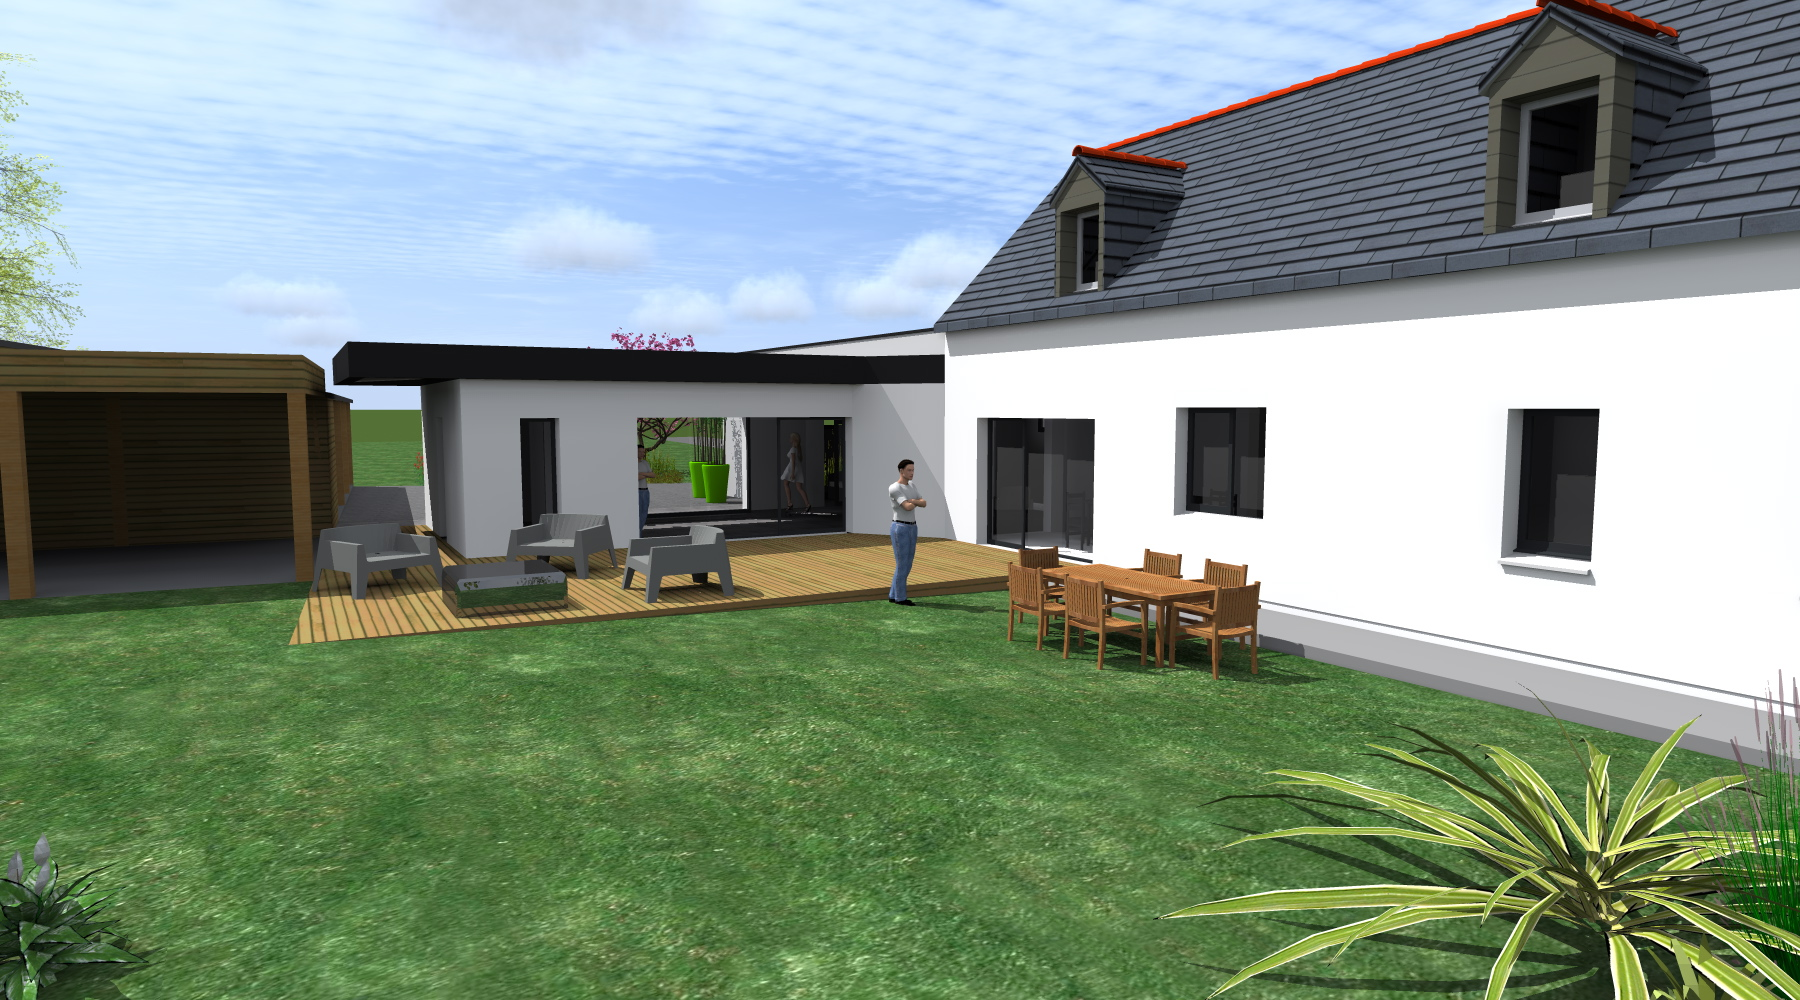 Projet c c 1 2 vue architecte lise roturier rennes for Recours architecte extension garage